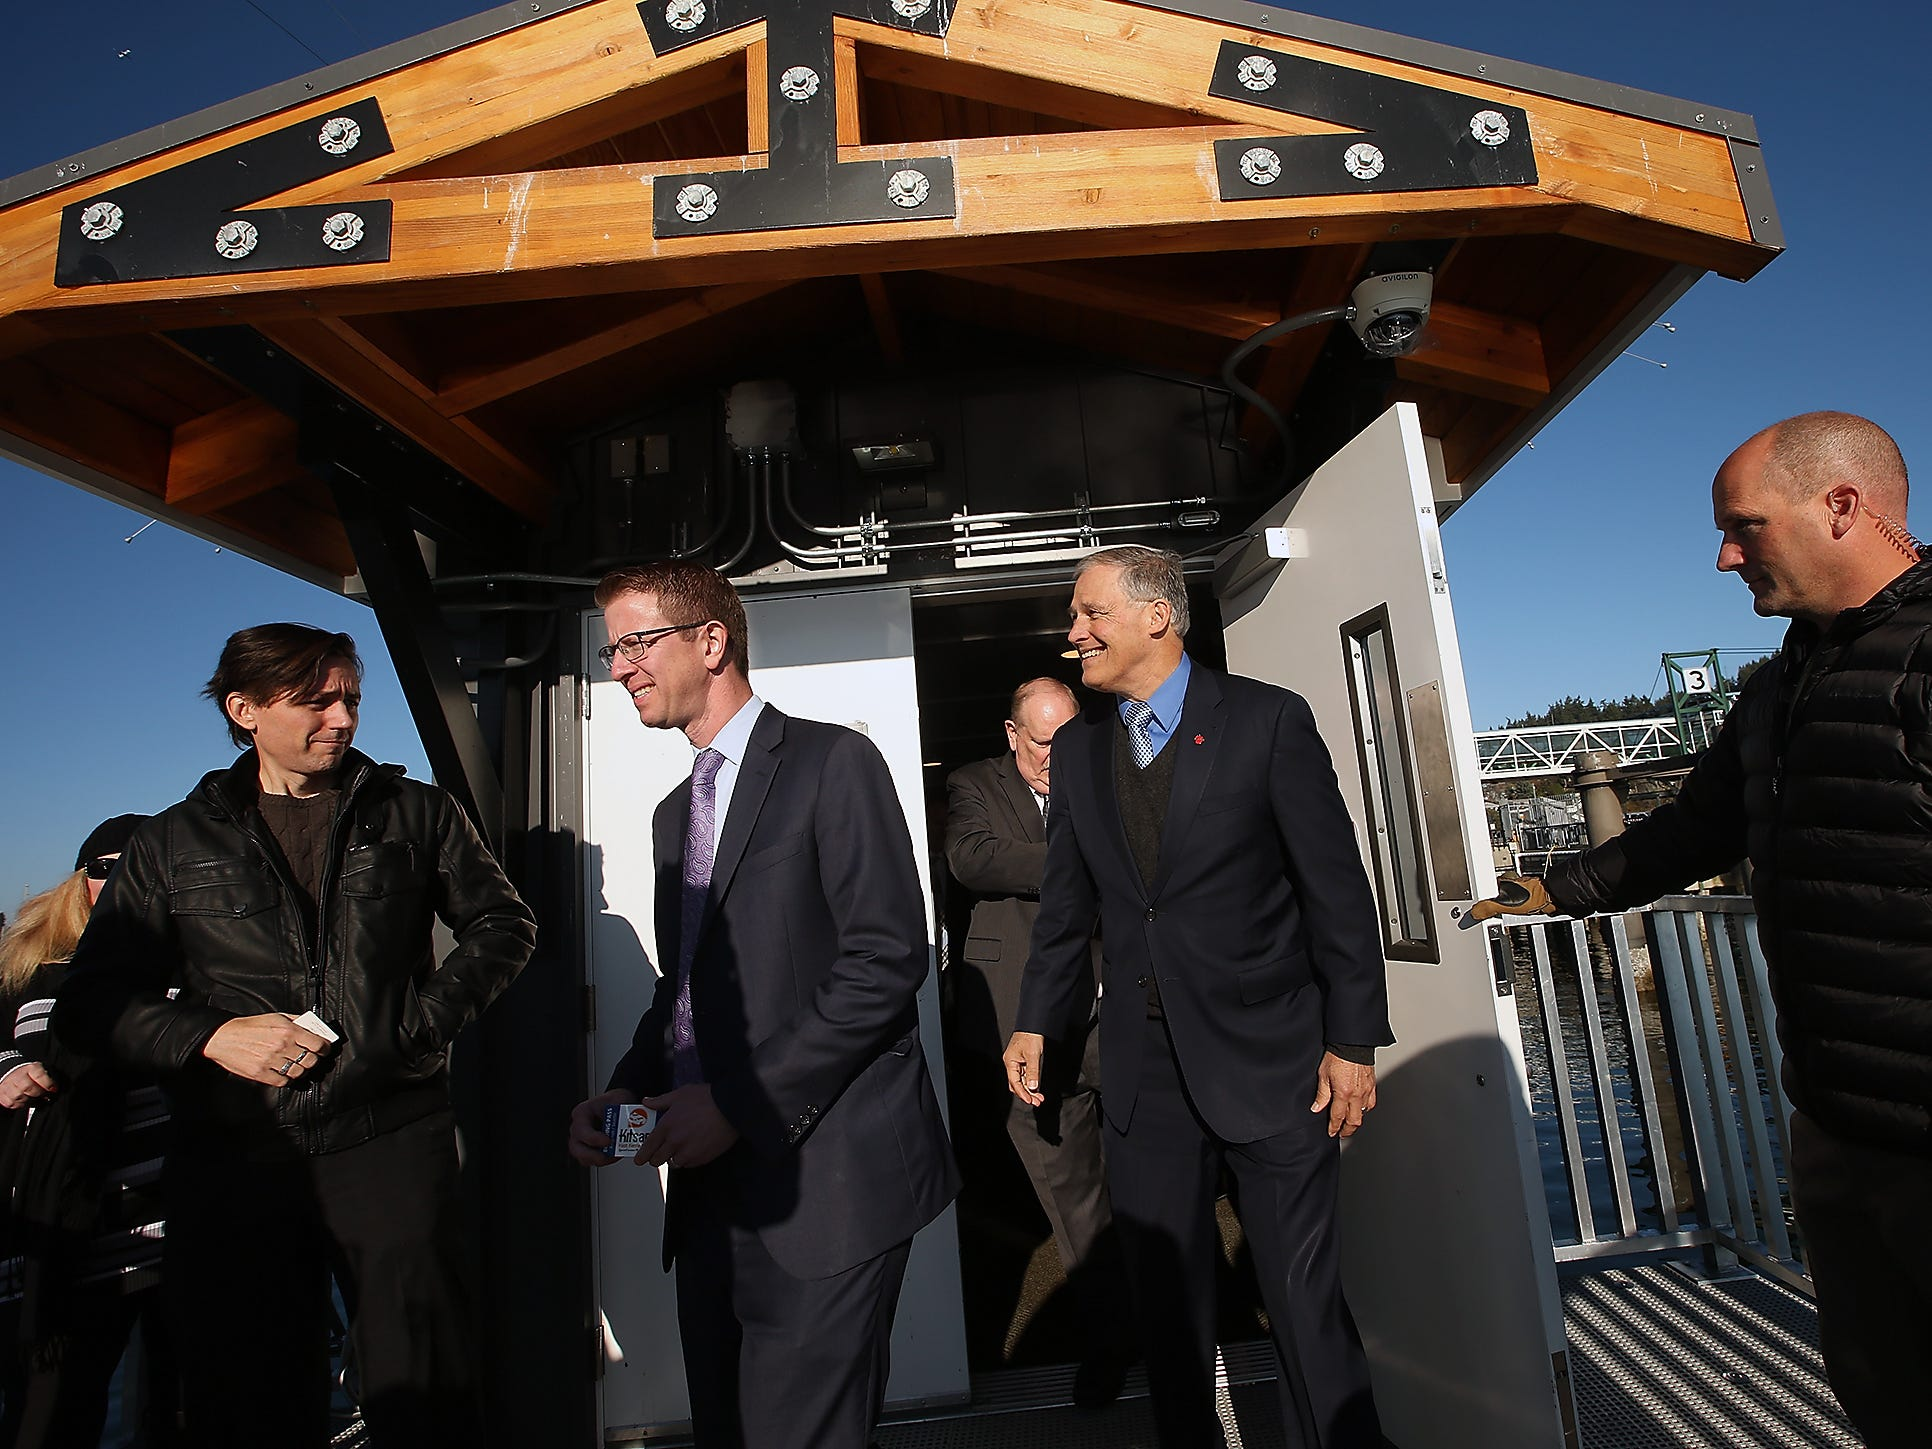 Grand Opening at the Port of Kingston for Kitsap Transit's new fast-ferry service between Kingston and Seattle on Monday, November 19, 2018.